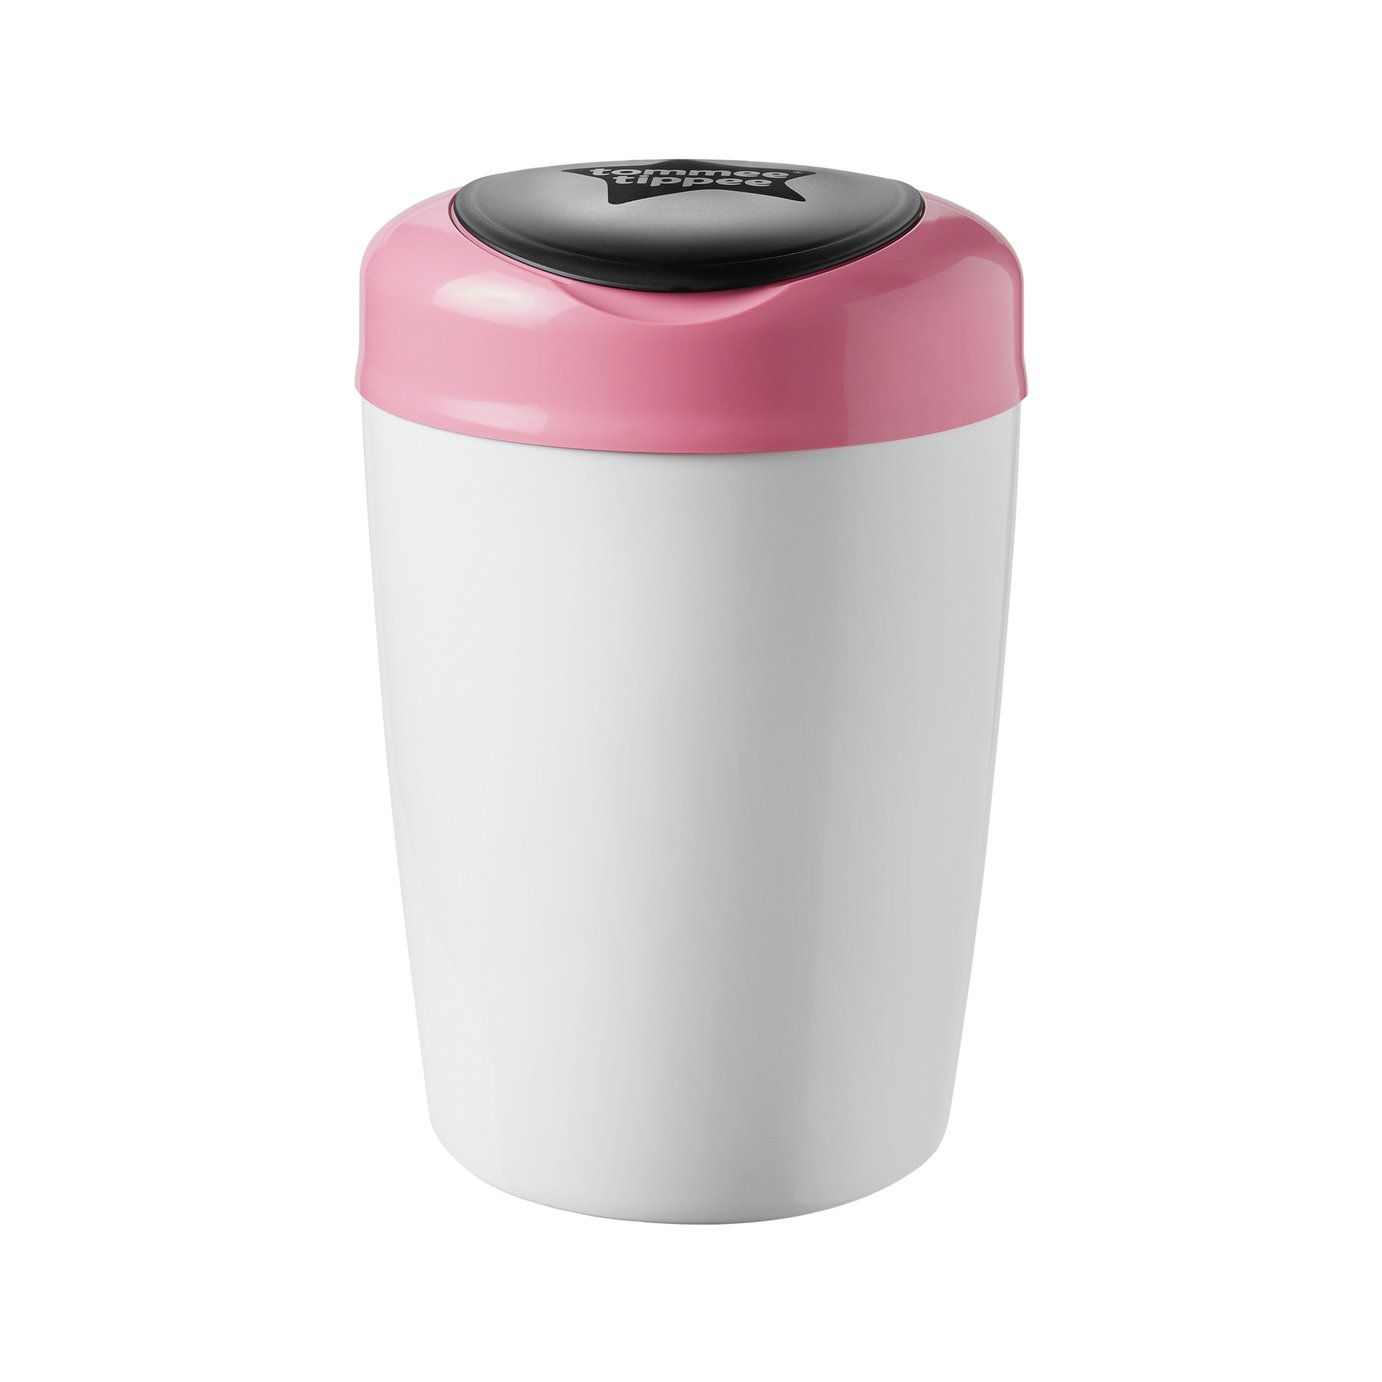 Tommee Tippee Simplee Sangenic Nappy Disposal Tub - Pink